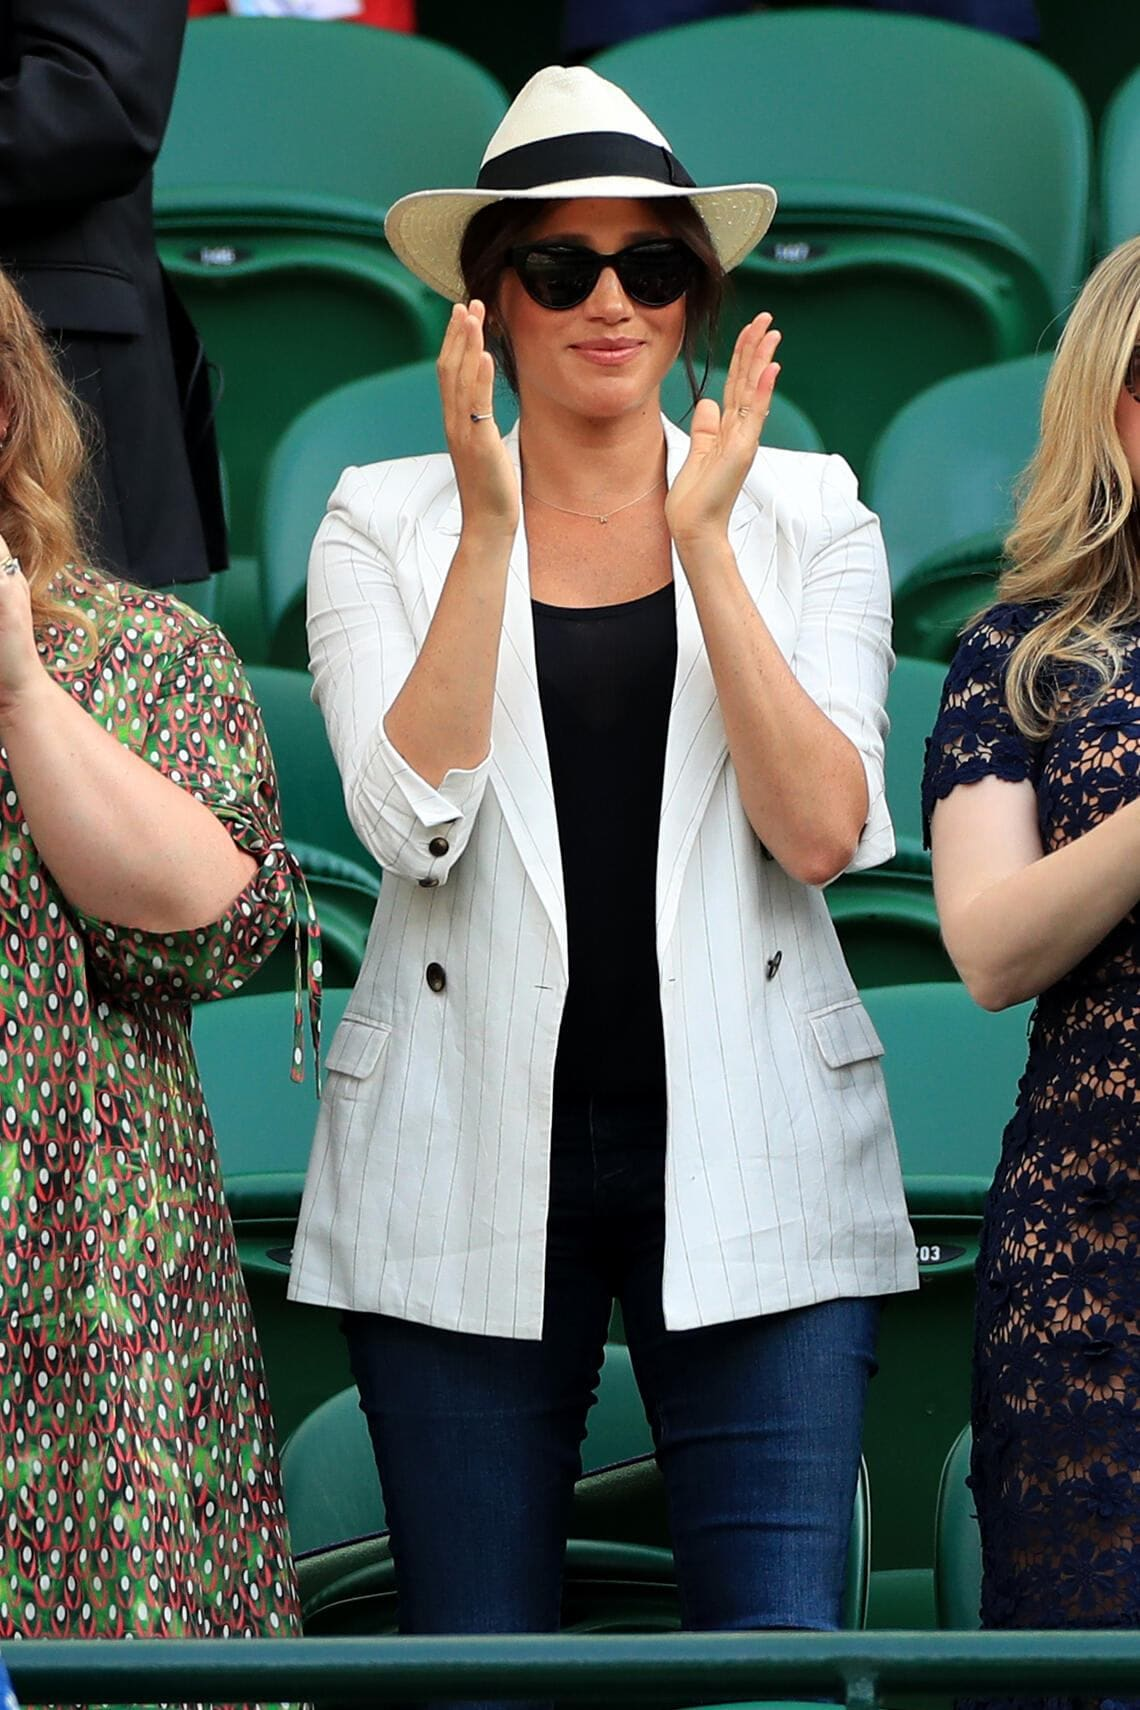 Duchess of Sussex after watching Serena Williams on court one on day four of the Wimbledon Championships at the All England Lawn Tennis and Croquet Club, Wimbledon. (Photo by Mike Egerton/PA Images via Getty Images)